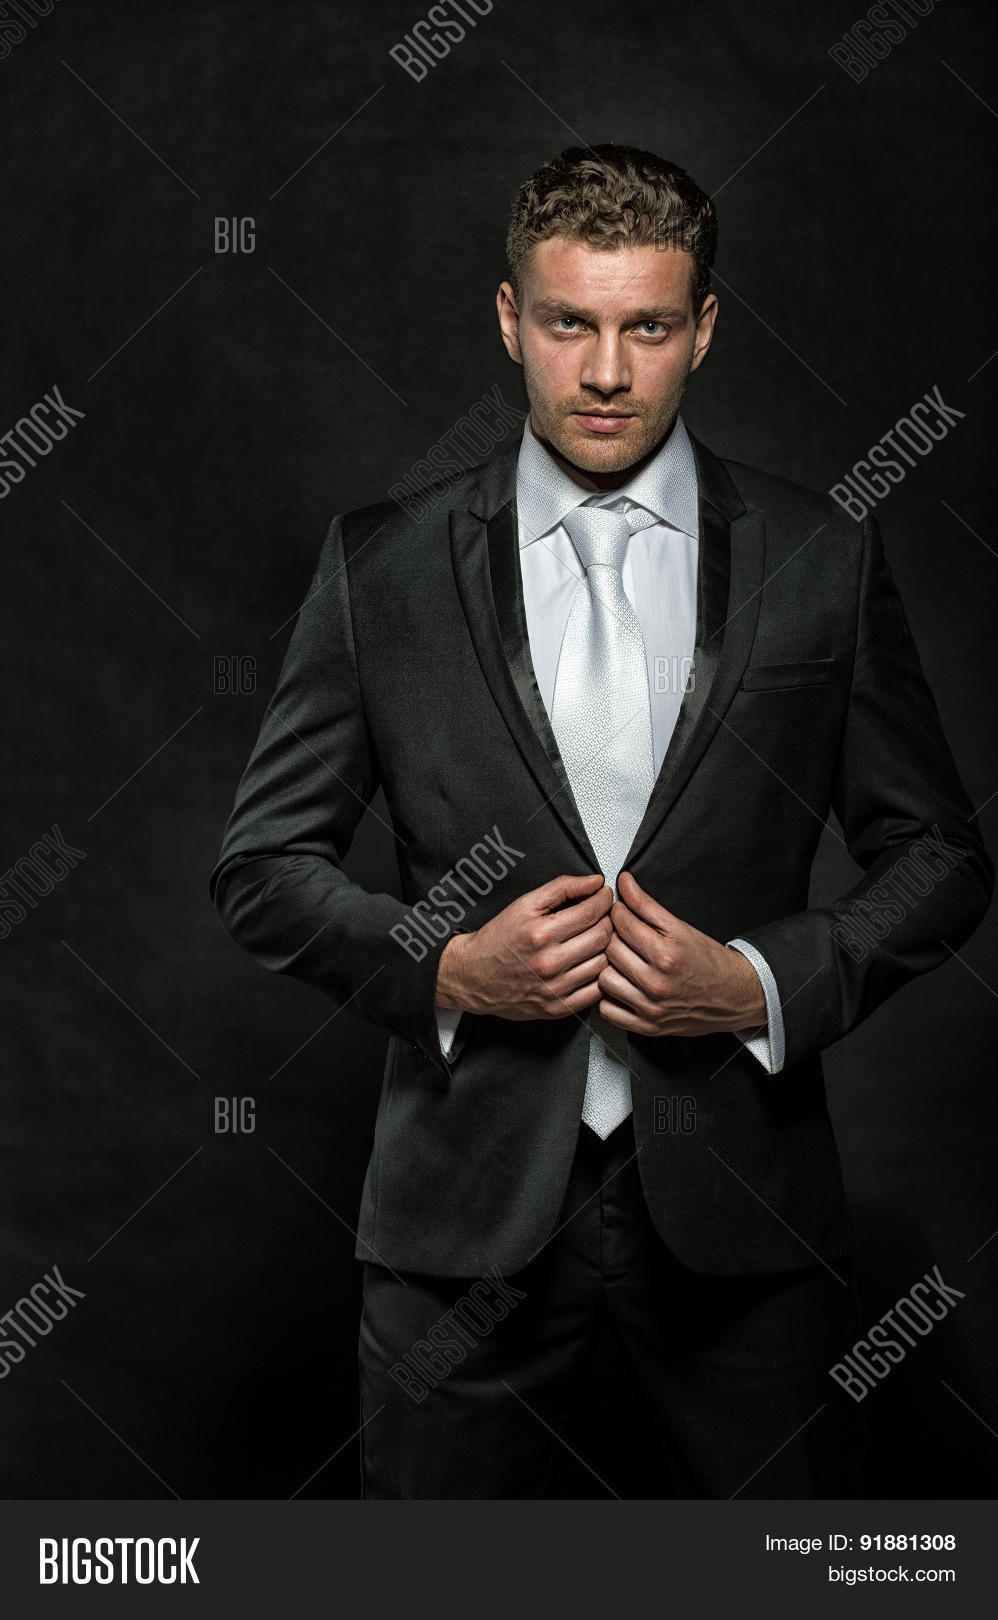 Young Handsome Businessmen In Suit With Images Photo Business